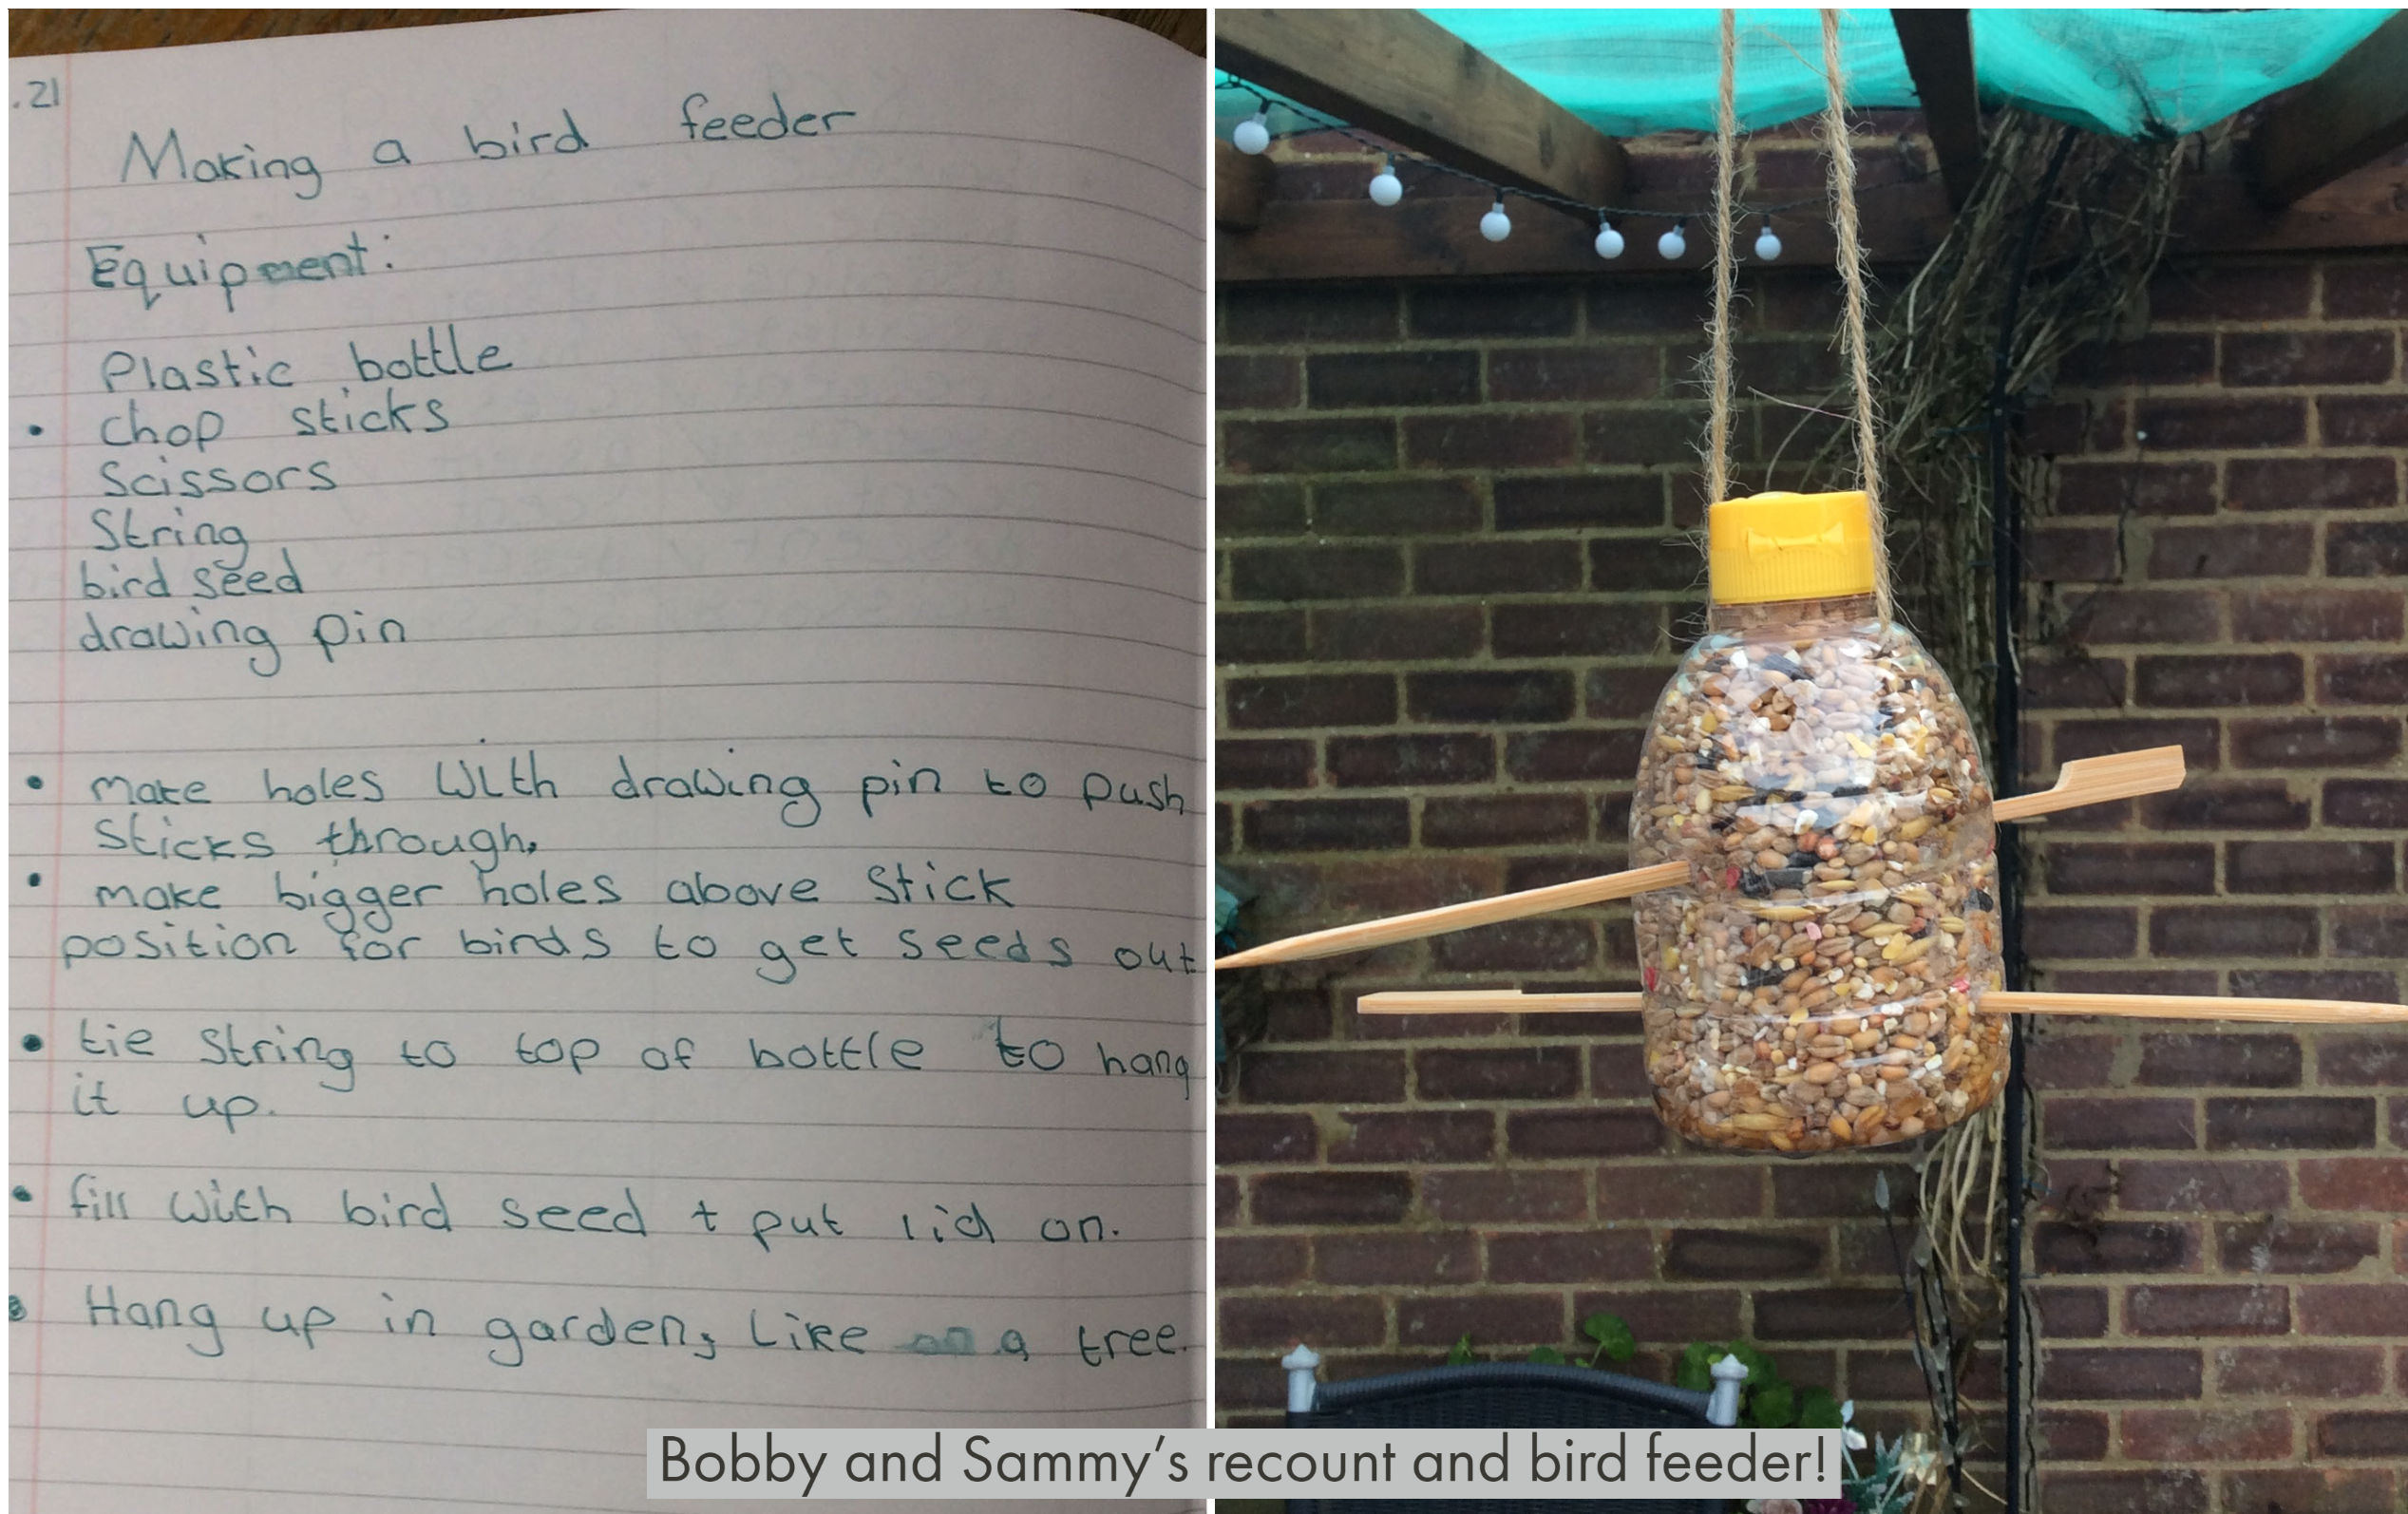 Bobby and Sammy's amazing bird feeder!